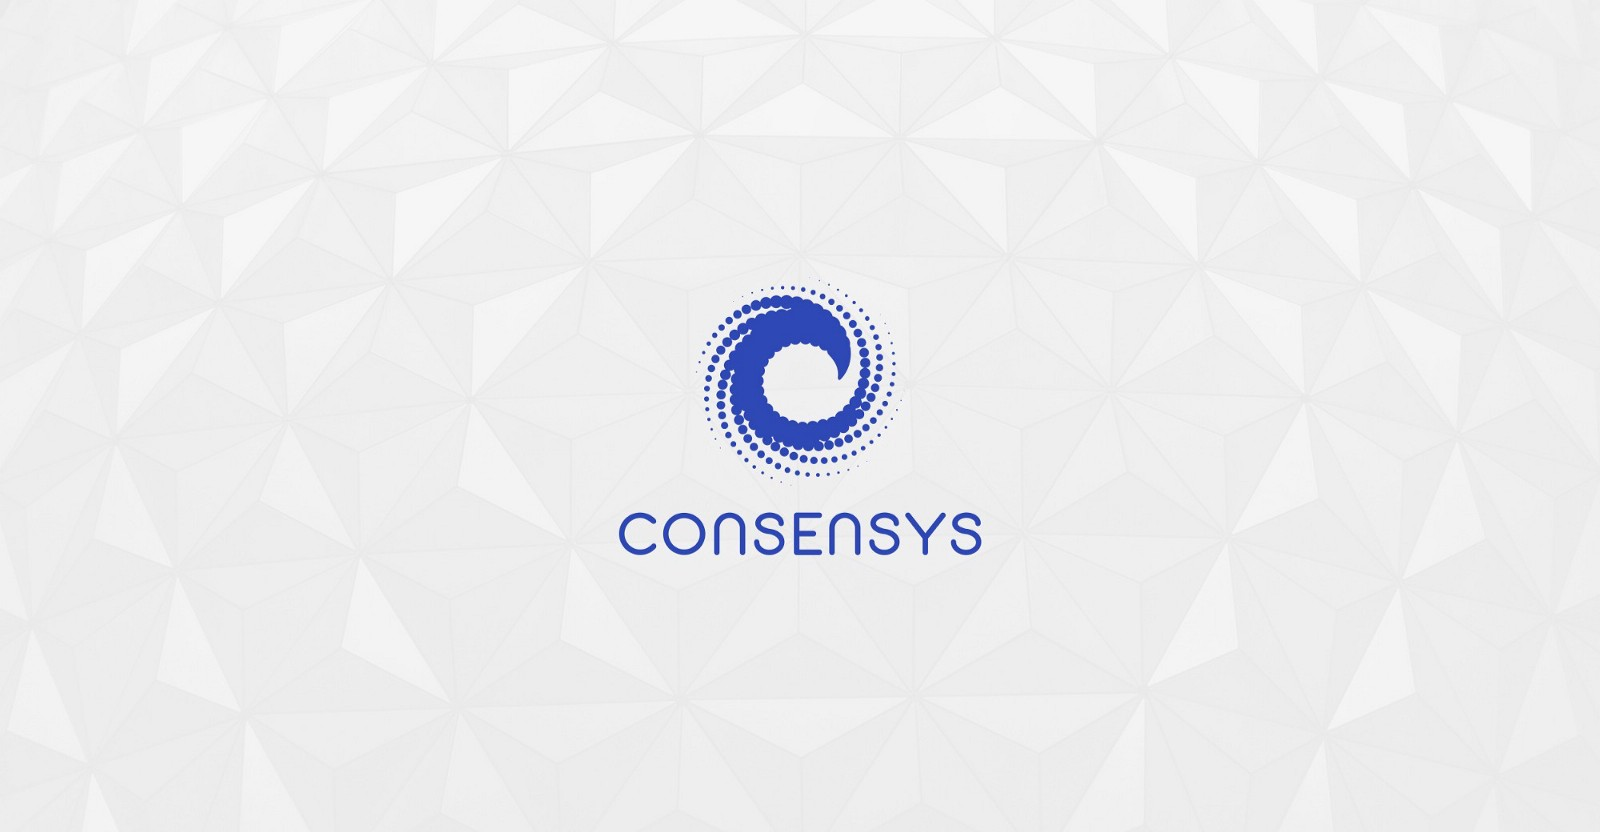 /consensys-understanding-one-of-the-most-important-firms-in-crypto-7e1d66533d4a feature image